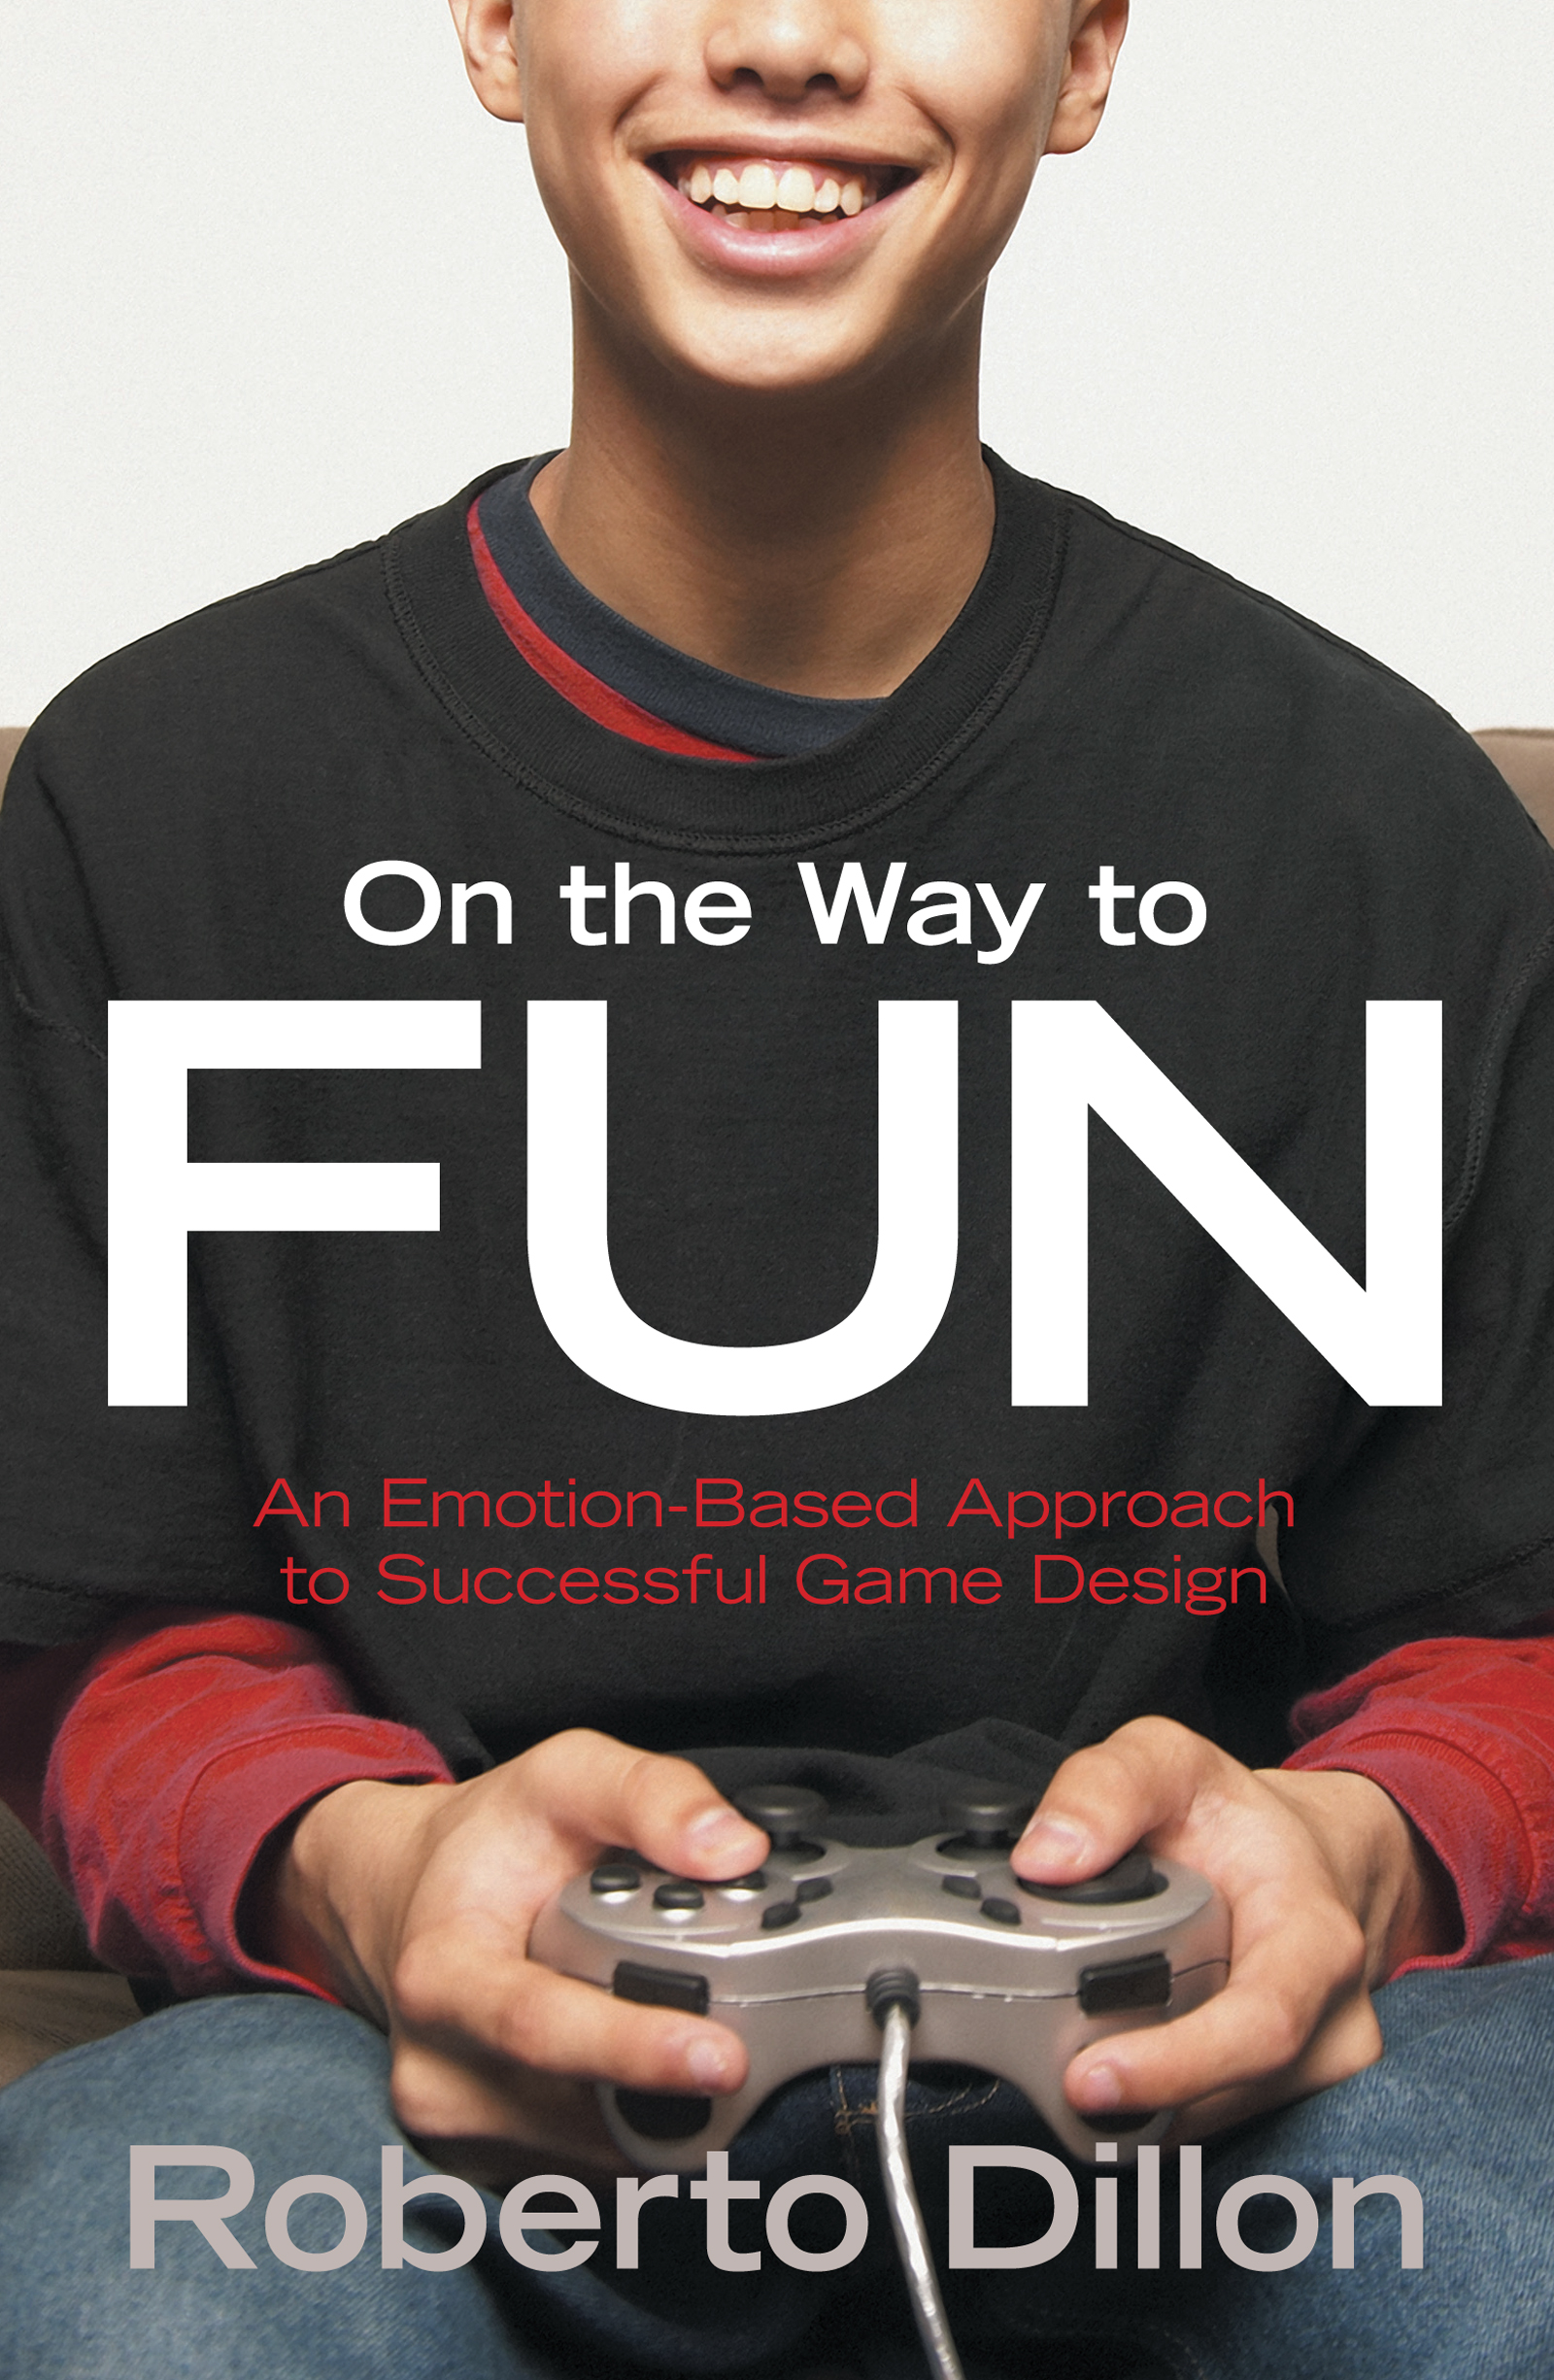 On the Way to Fun: An Emotion-Based Approach to Successful Game Design book cover